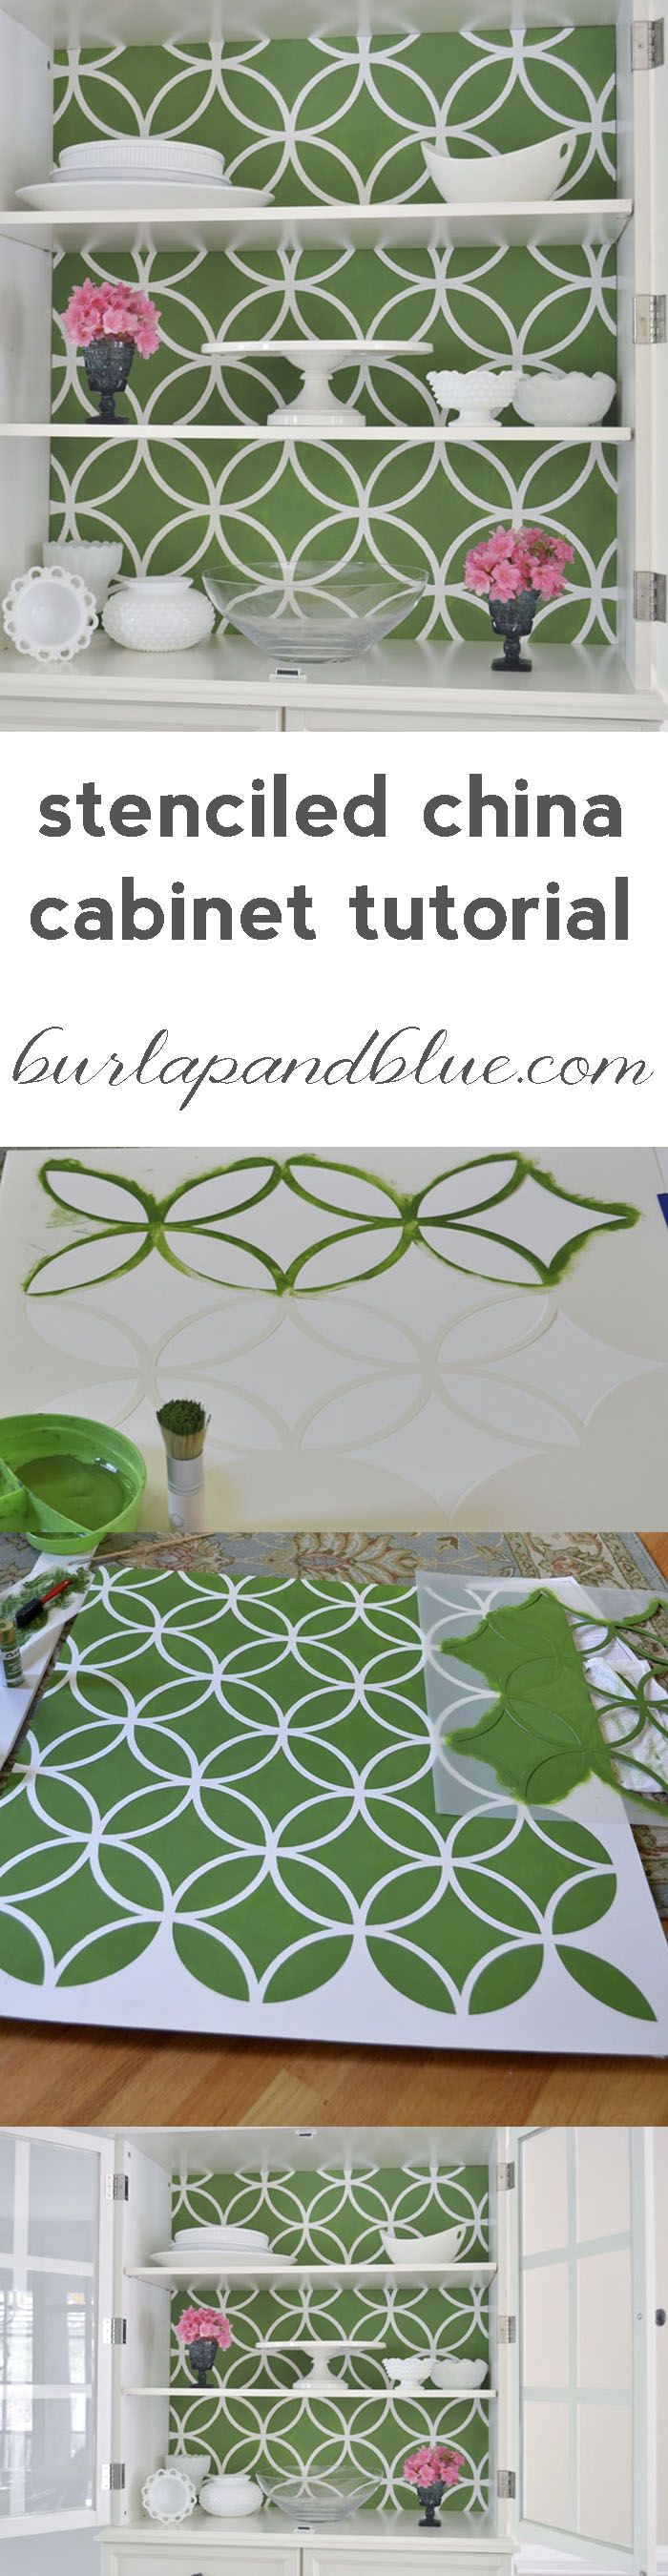 Bring you china cabinet to the next level. Spice it up a little with this Stenciled China Cabinet Tutorial!